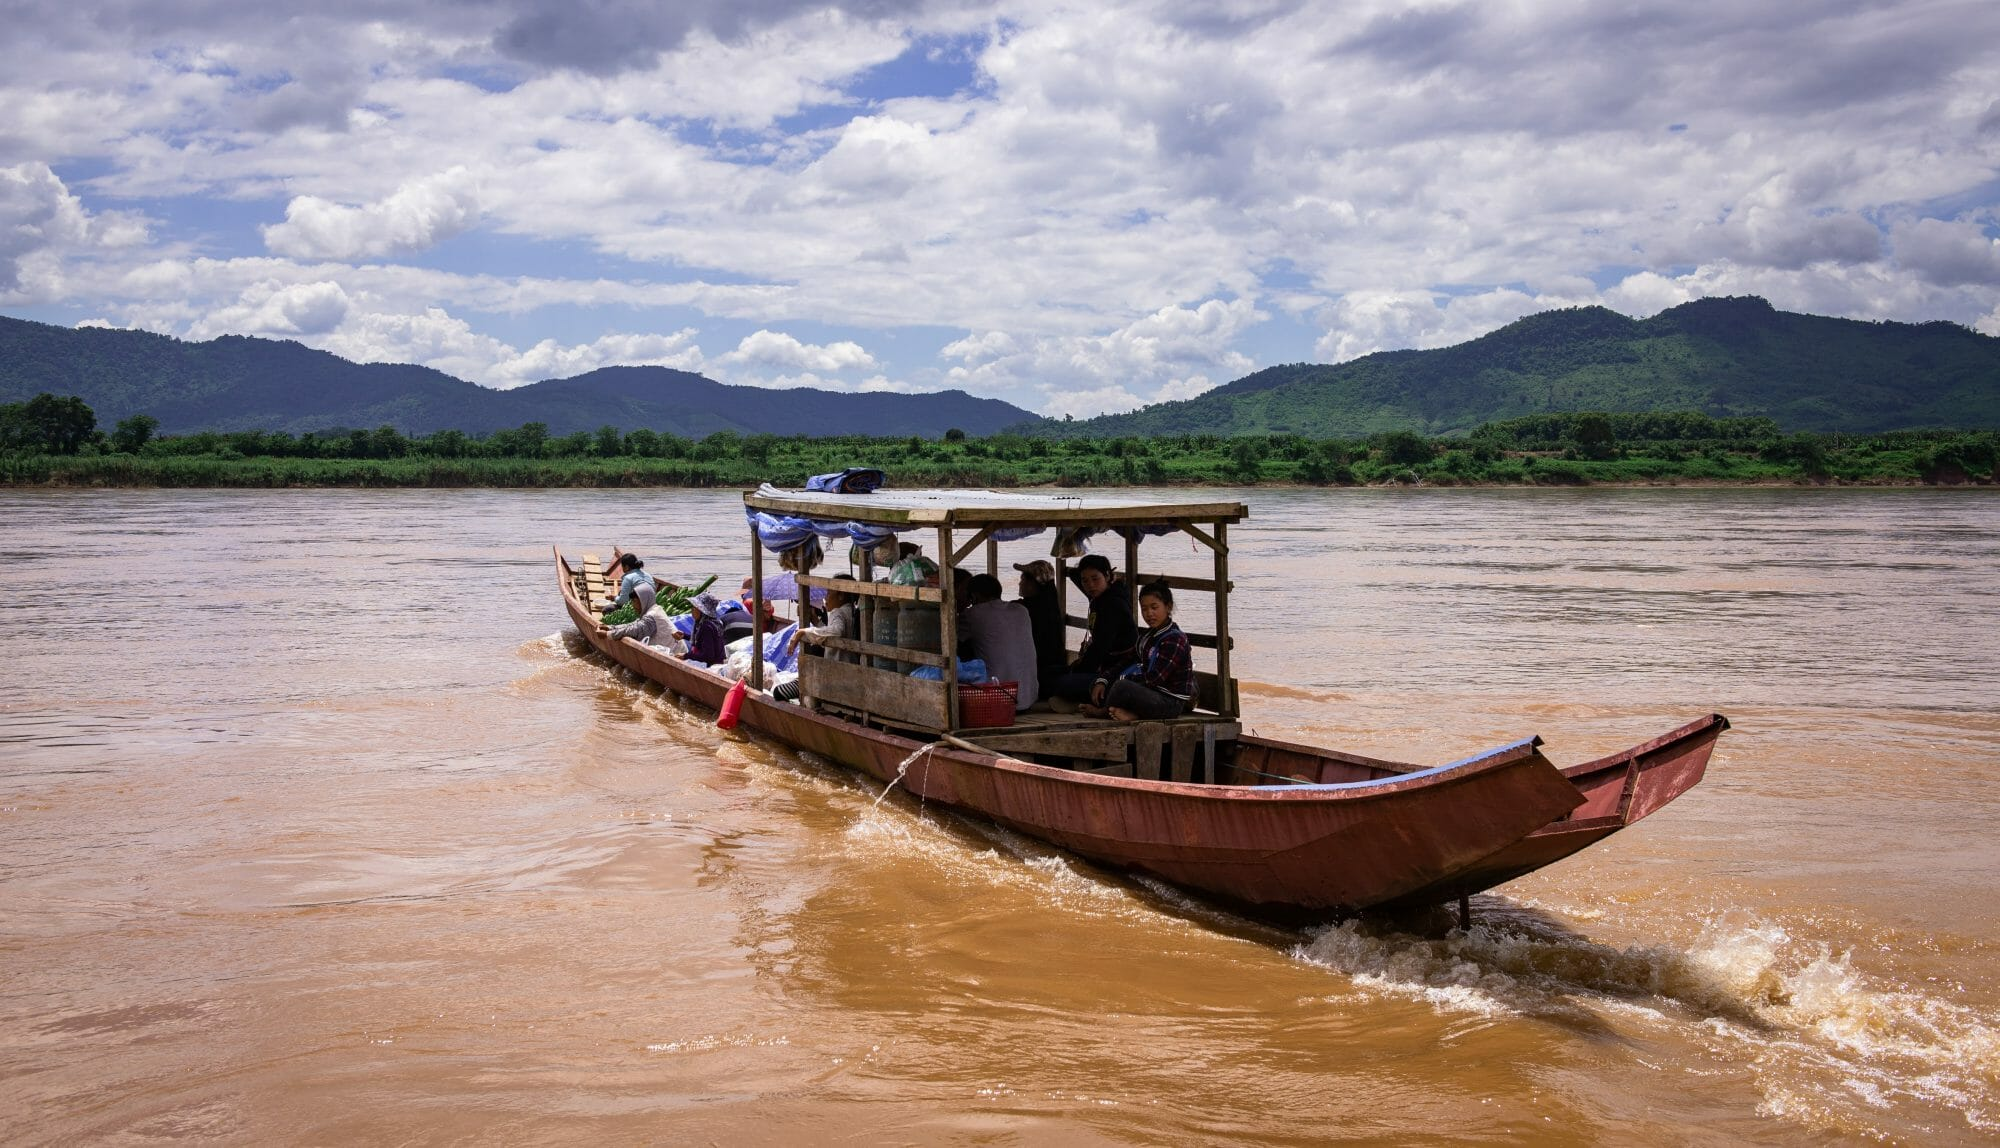 A boat crosses the Mekong River in northern Thailand near Chiang Khong.